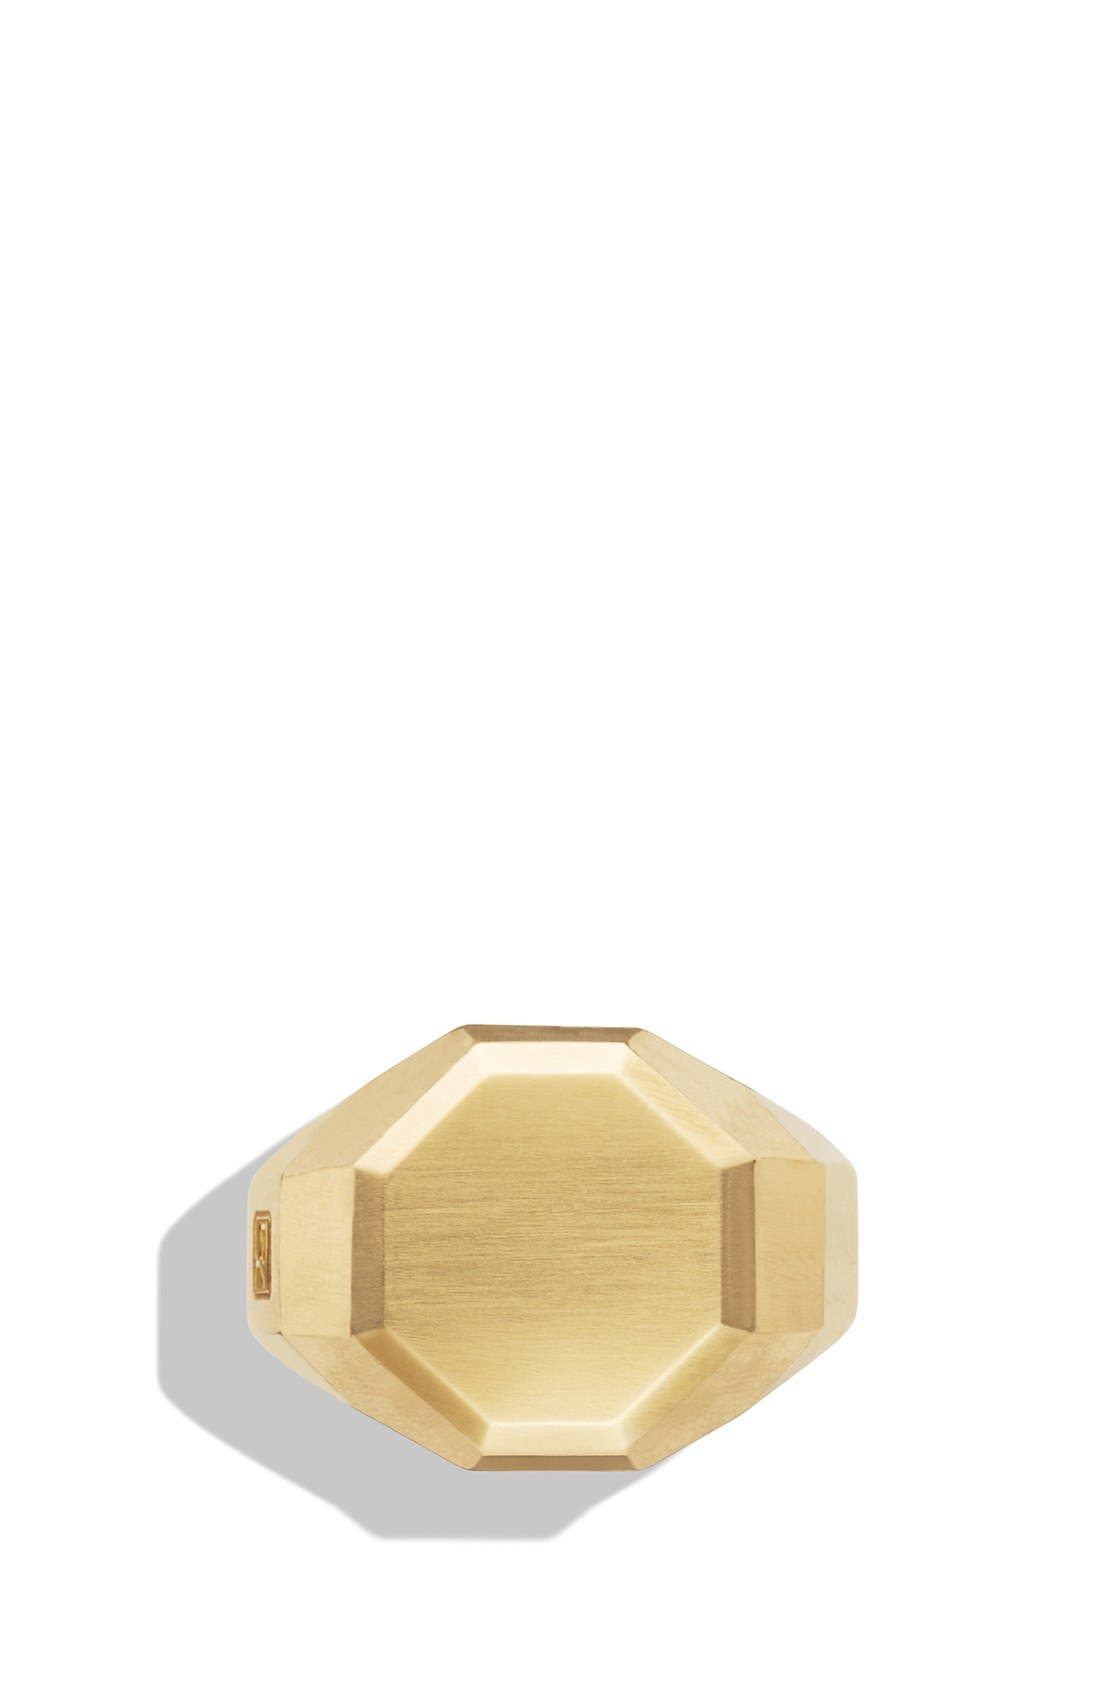 'Faceted' Signet Ring with 18k Gold,                             Alternate thumbnail 2, color,                             Two Tone